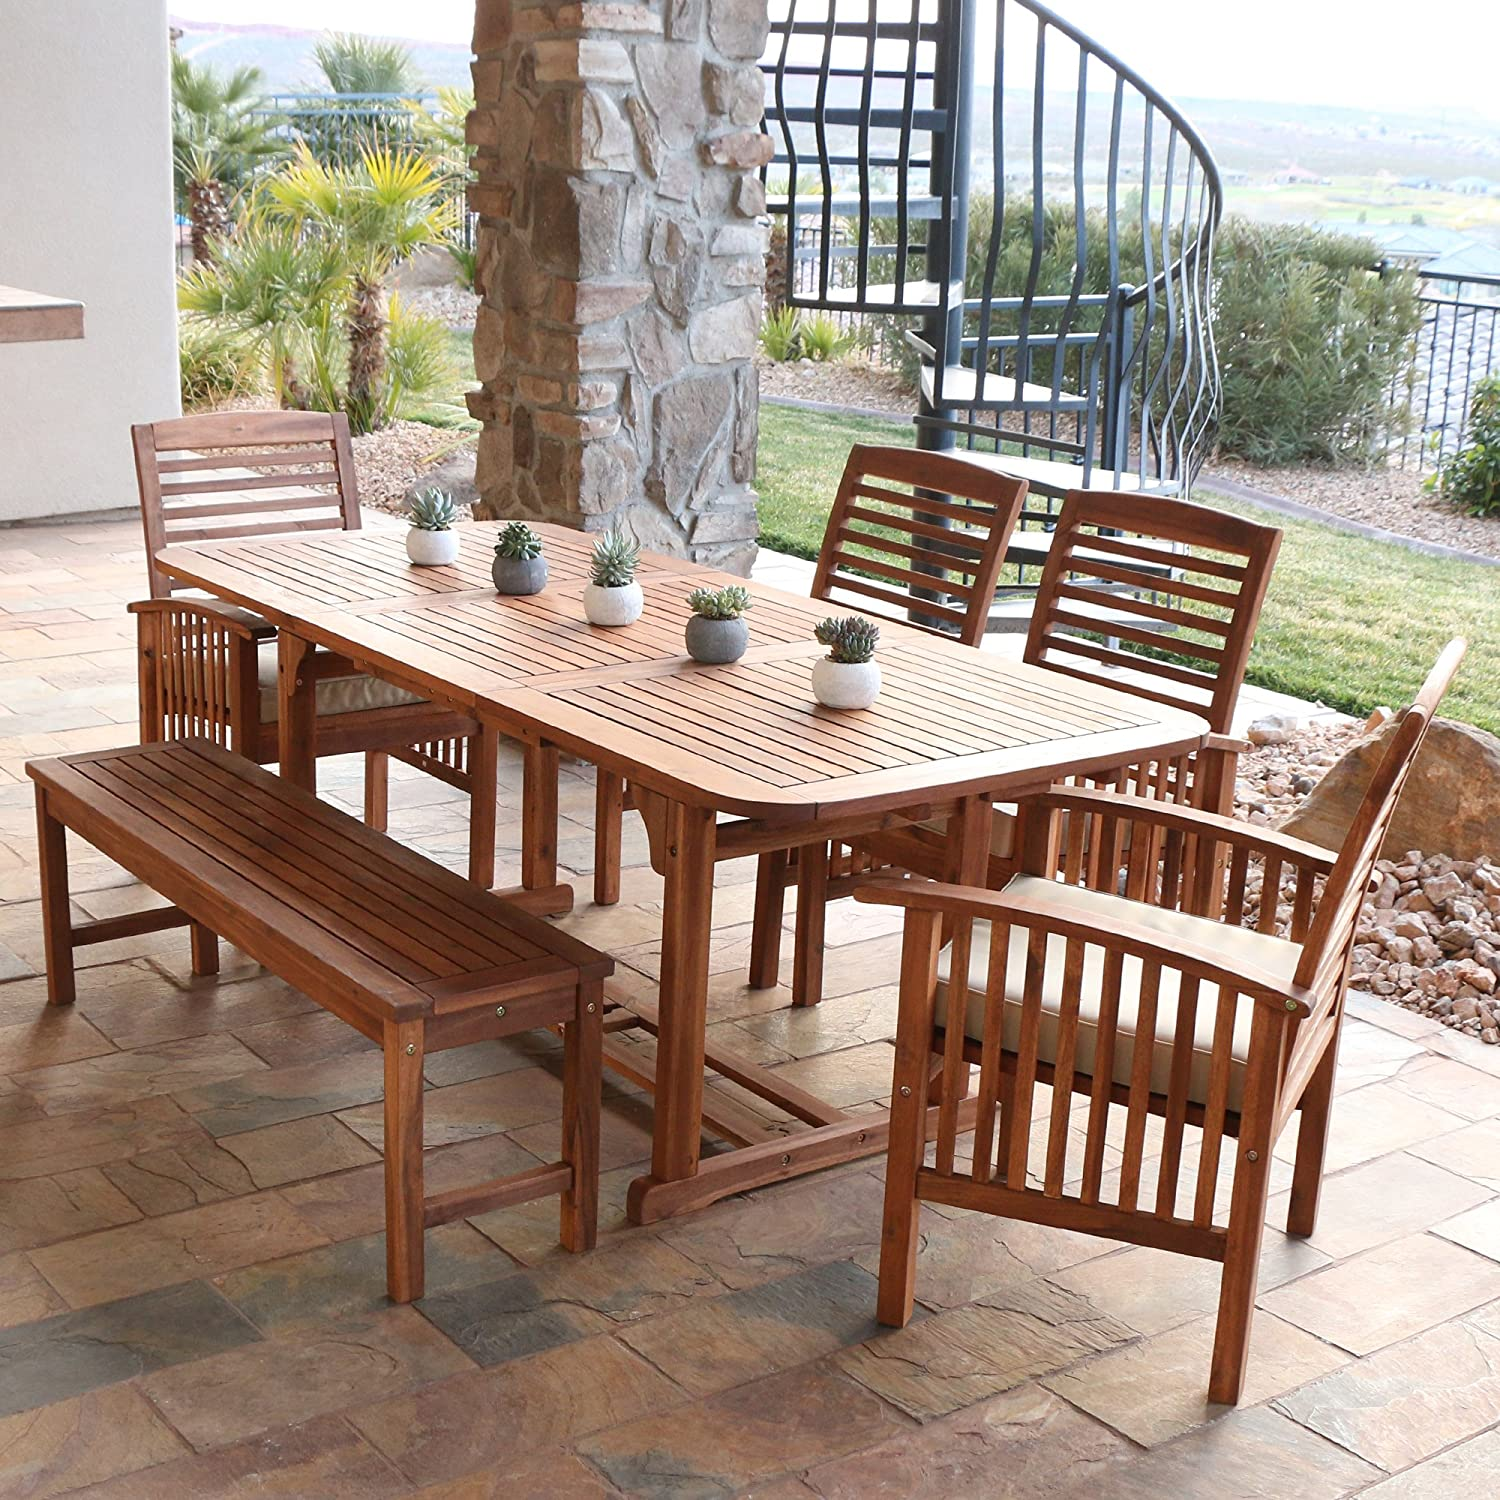 Amazon.com: WE Furniture Solid Acacia Wood 6-Piece Patio Dining Set: Garden  & Outdoor - Amazon.com: WE Furniture Solid Acacia Wood 6-Piece Patio Dining Set